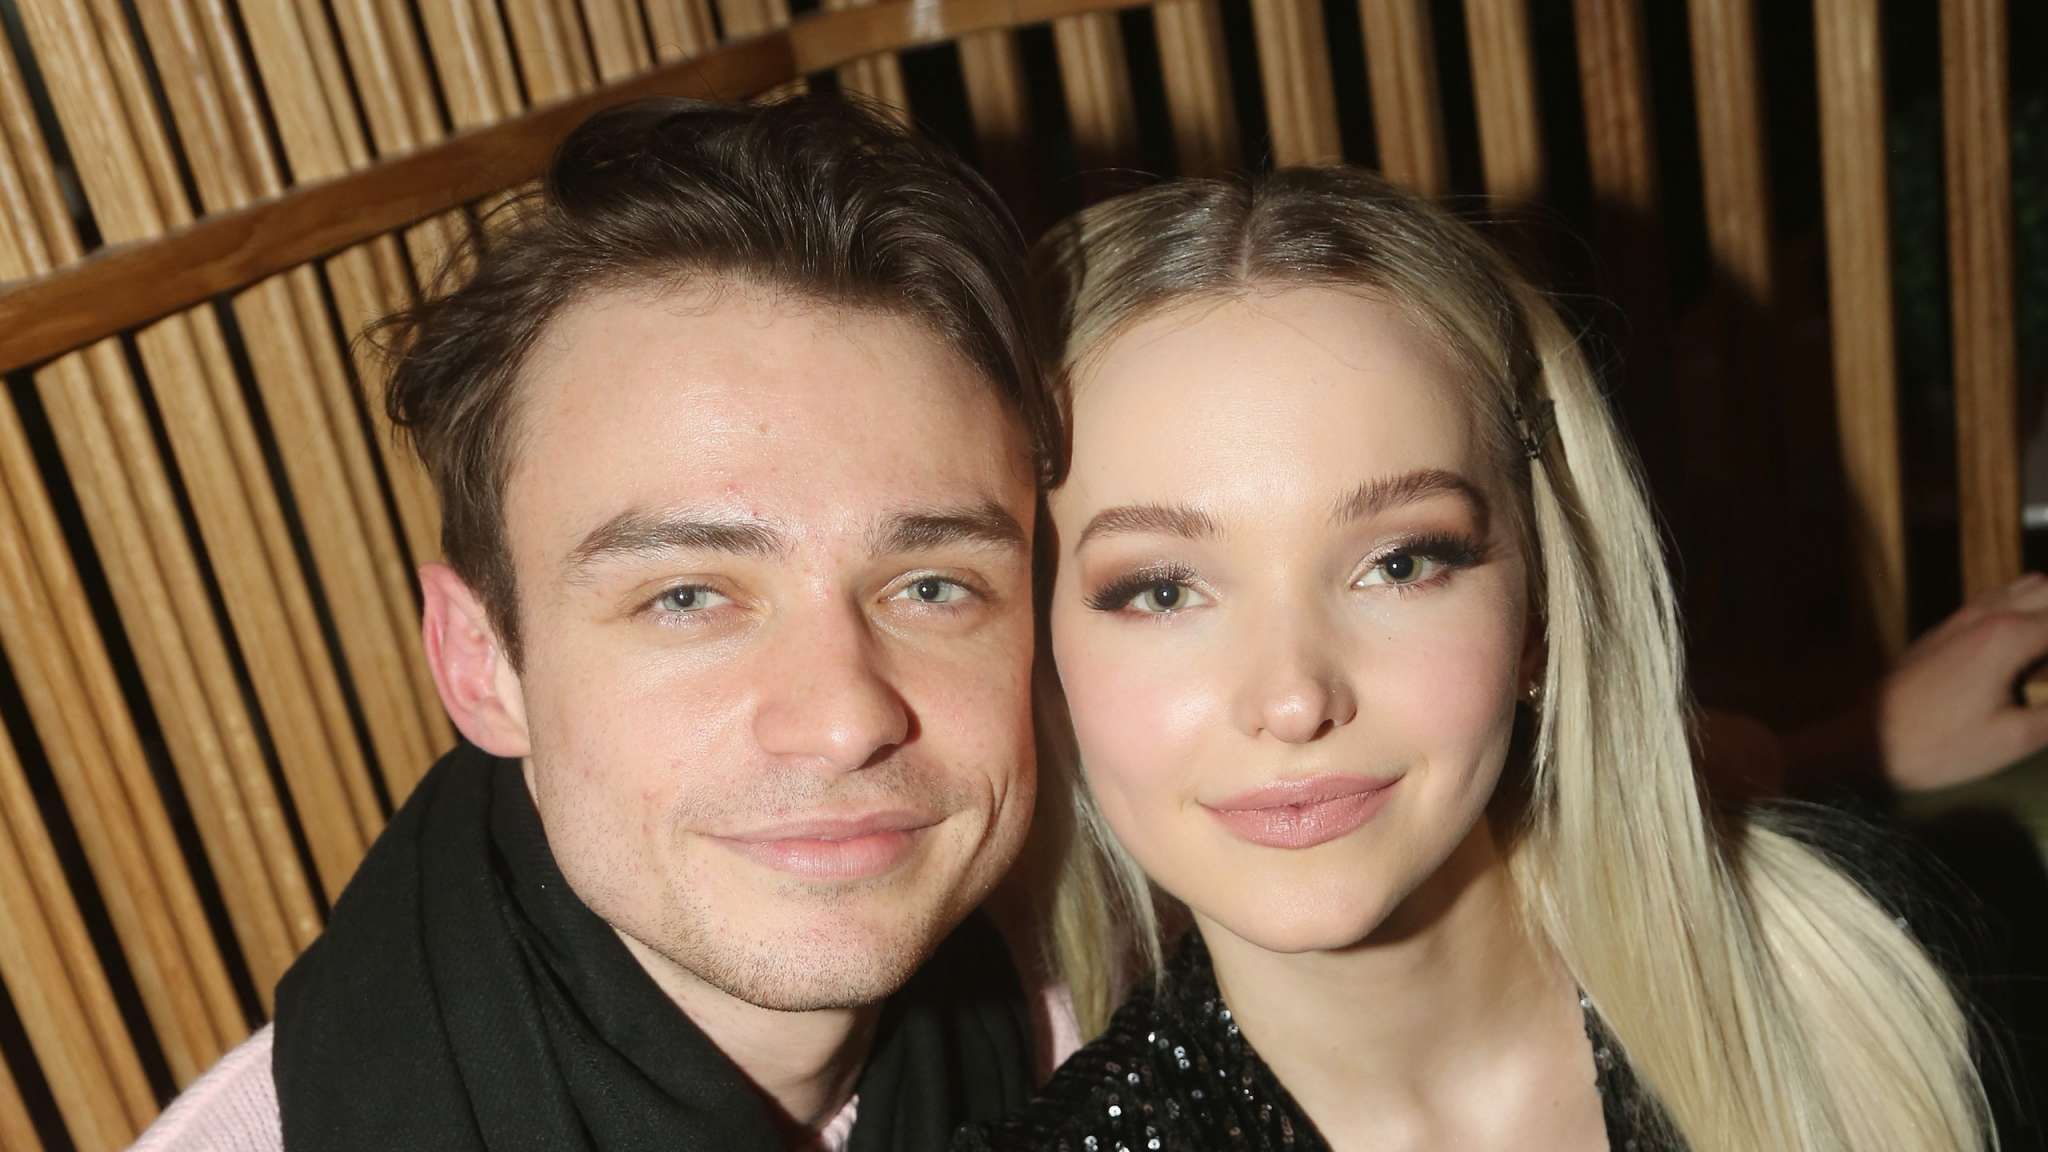 dove-cameron-gets-candid-about-her-split-from-thomas-doherty-i-was-in-a-really-bad-place